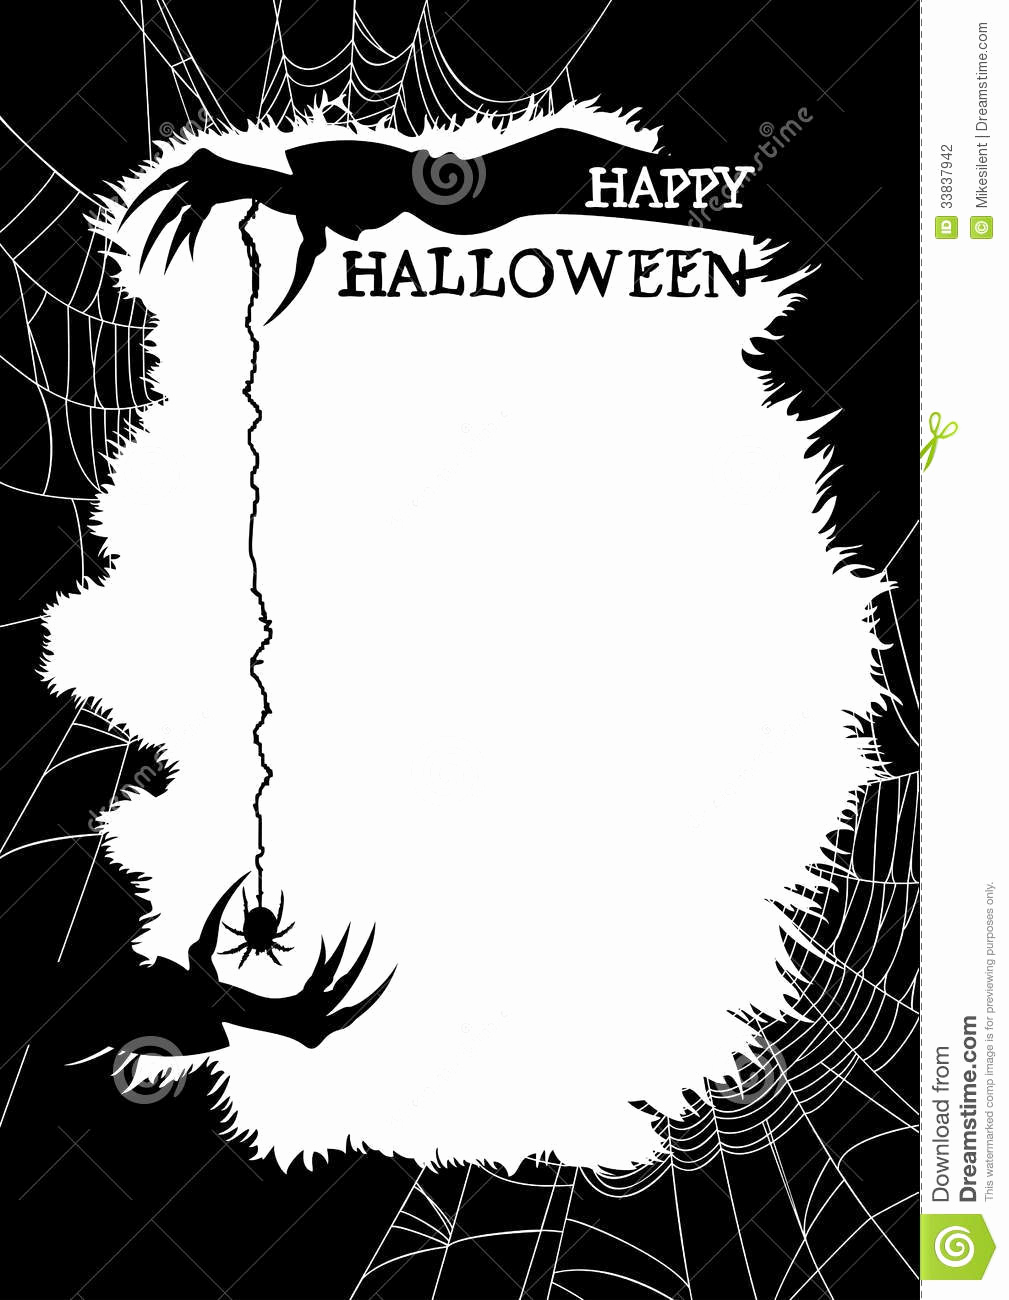 Free Halloween Invitation Template Best Of Blank Halloween Invitation Templates – Festival Collections